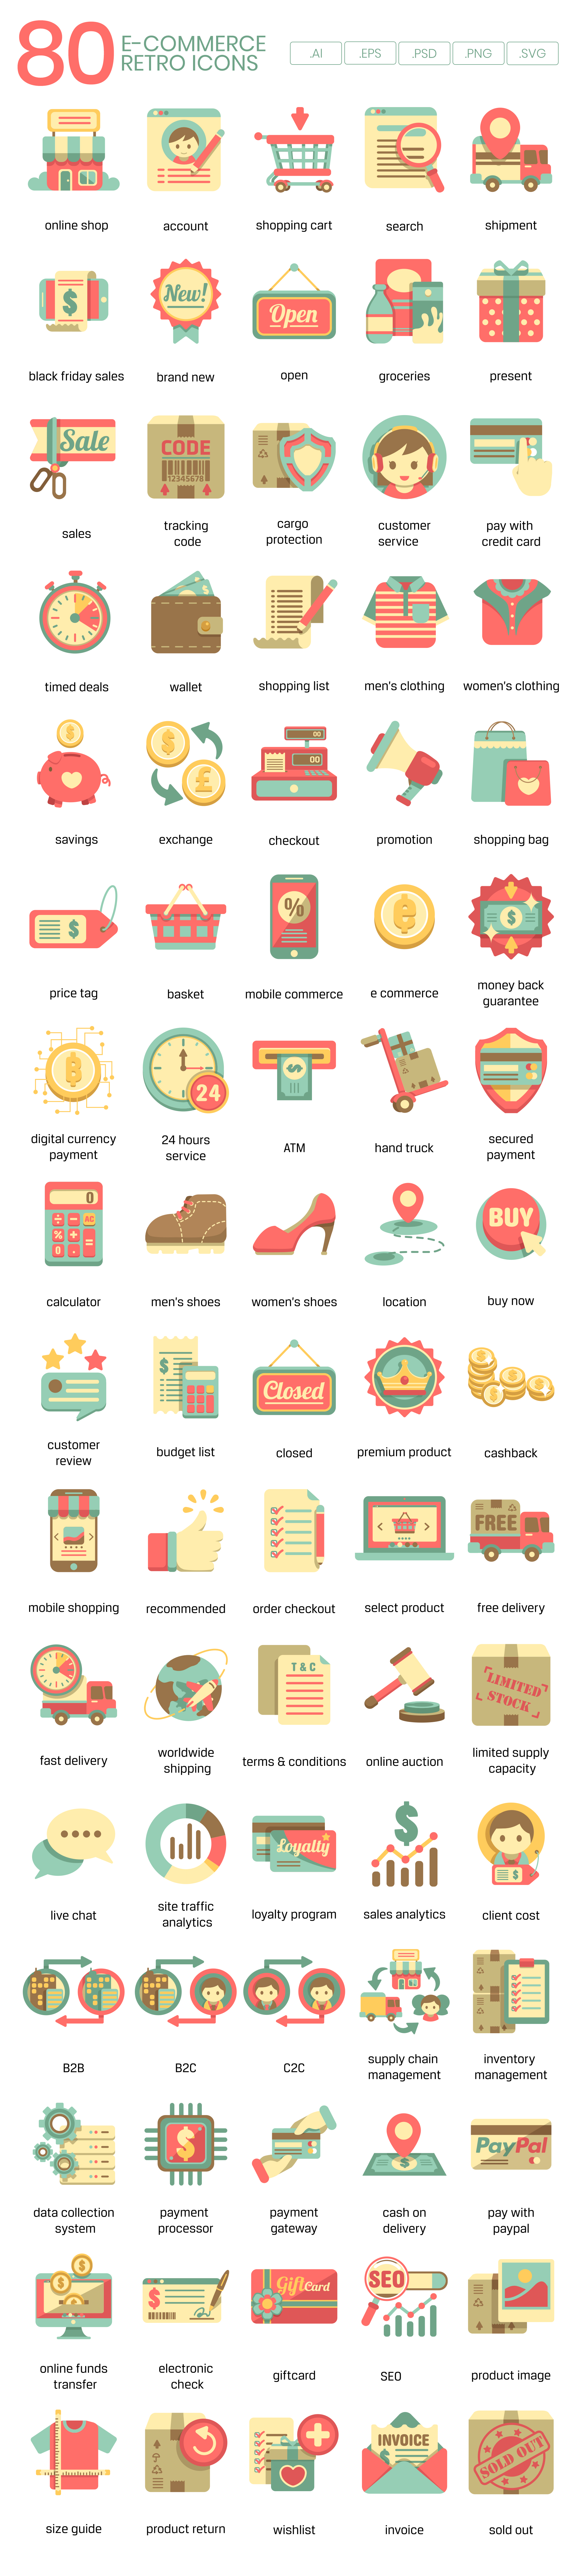 ecommerce vector icons